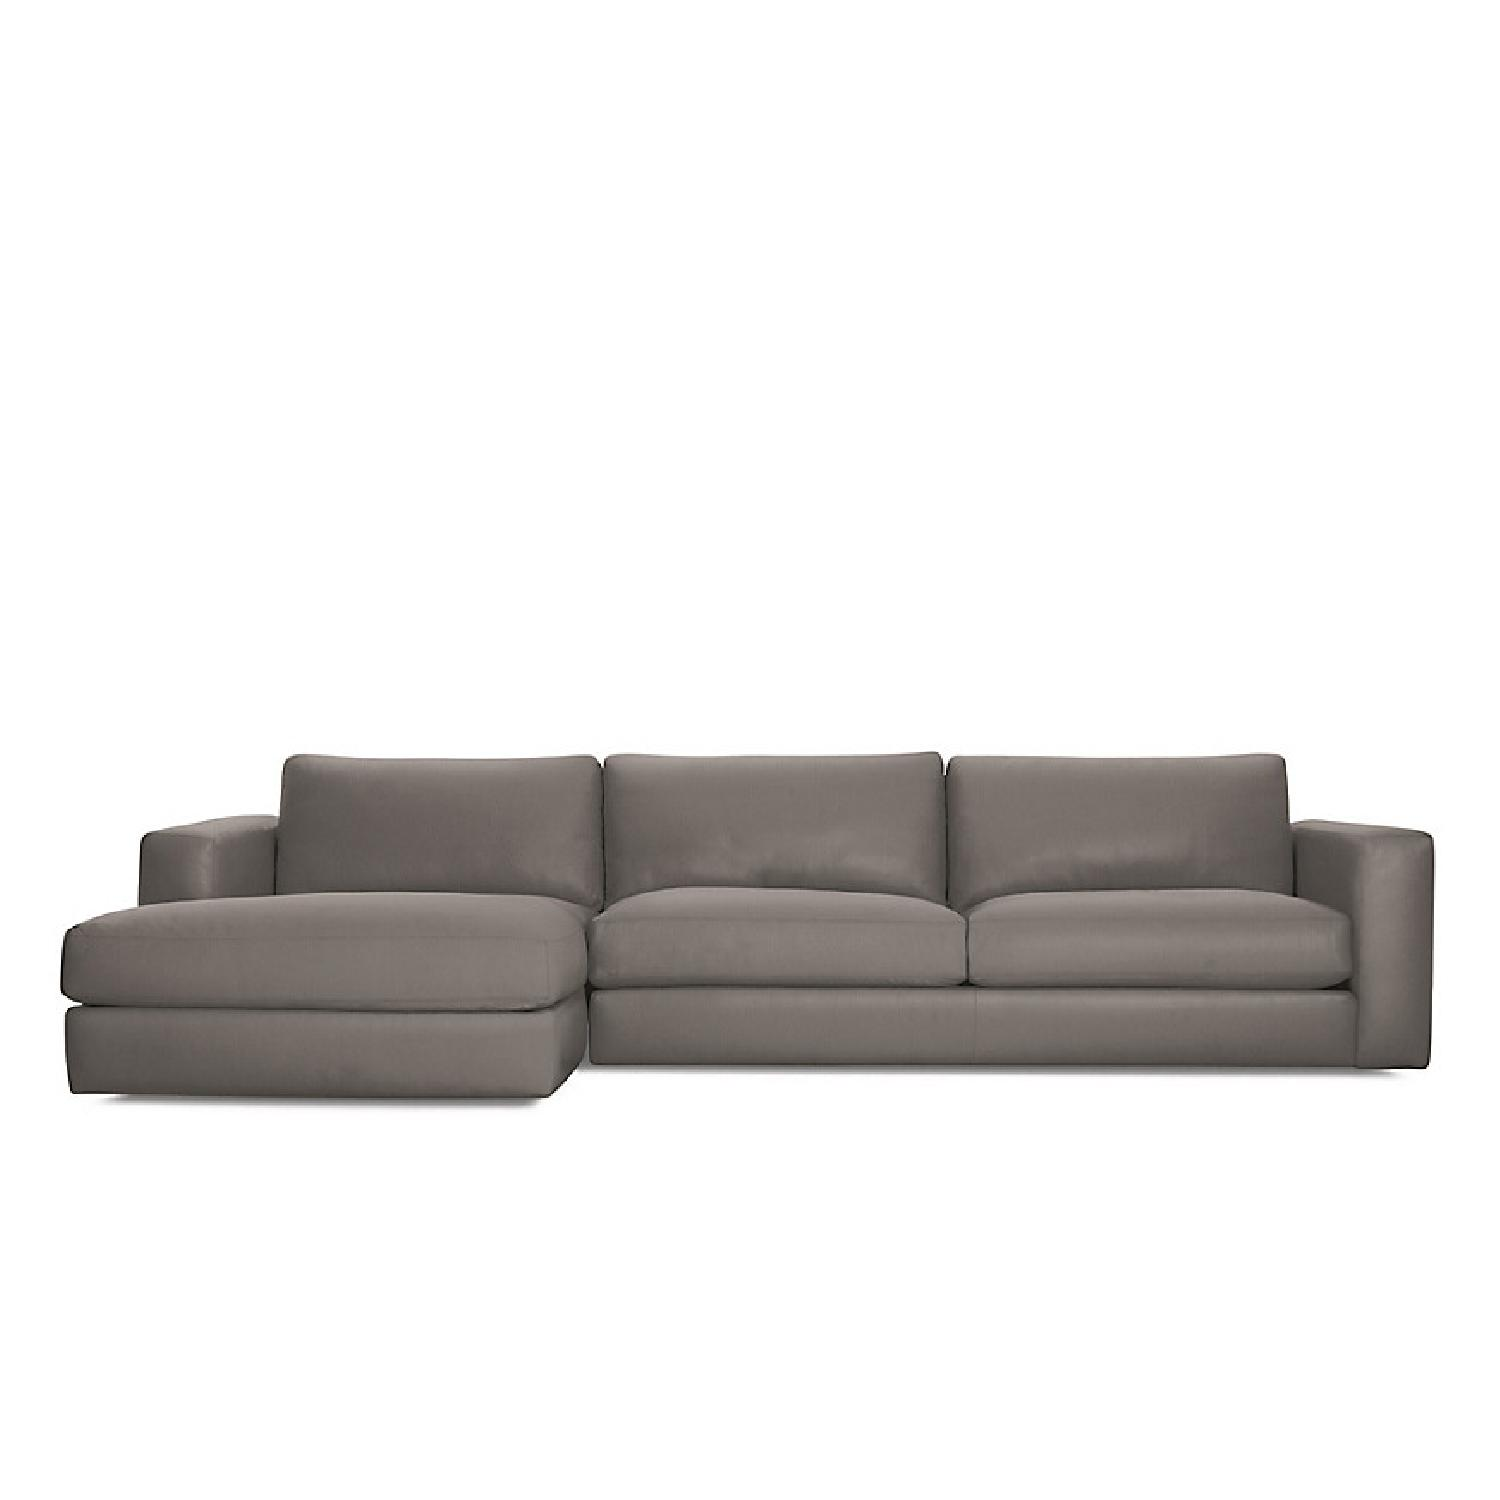 DWR Reid Sectional Leather Sofa